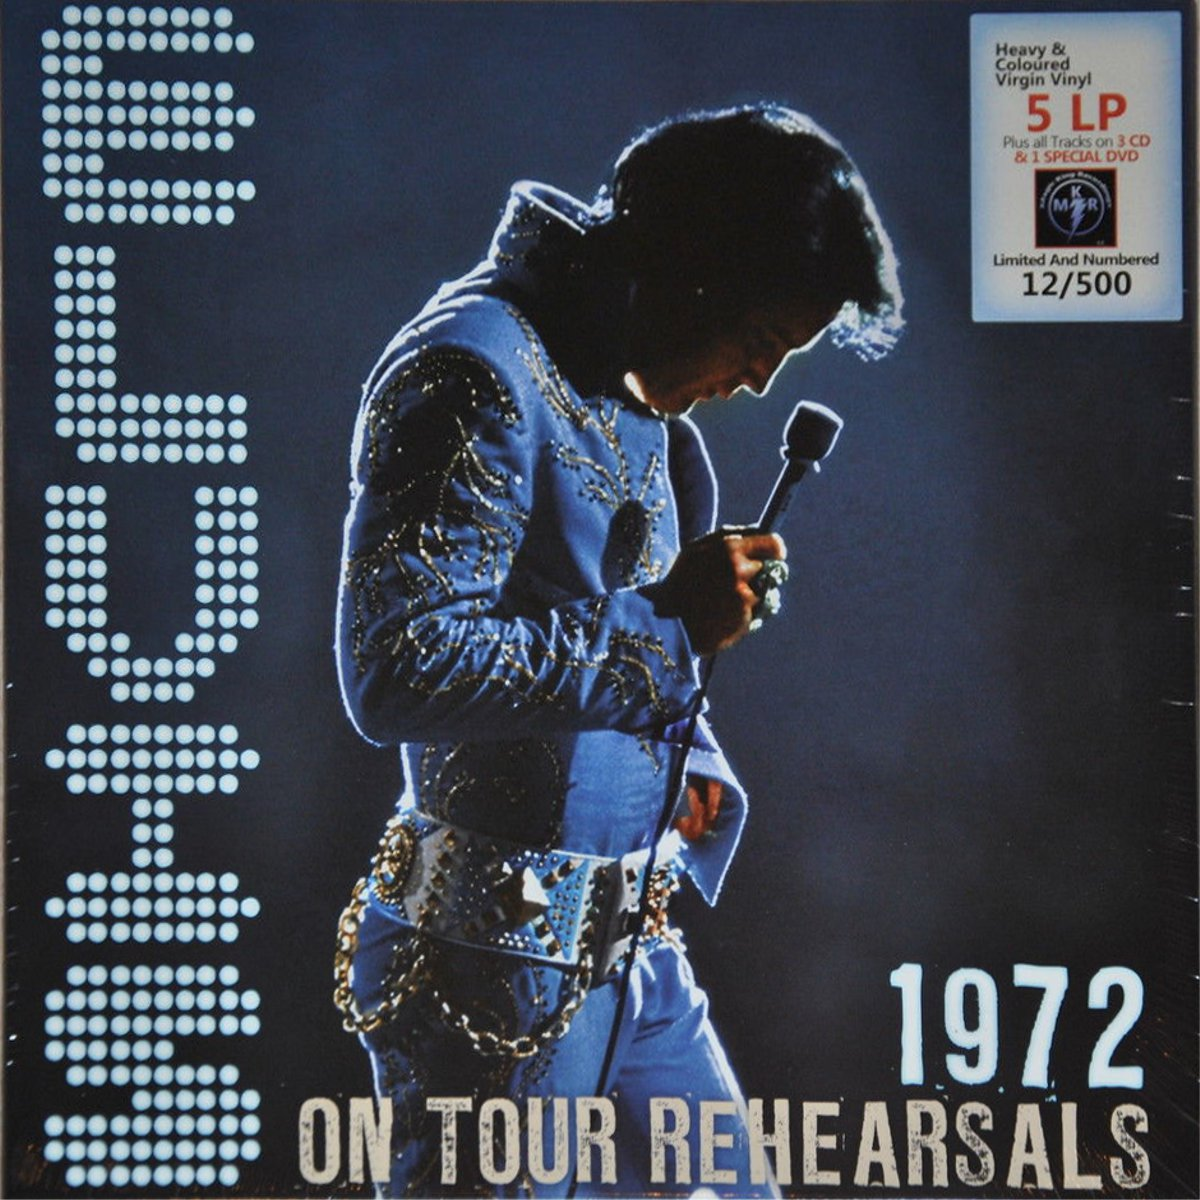 Elvis On Tour Rehearsals: 1972 01p6eho